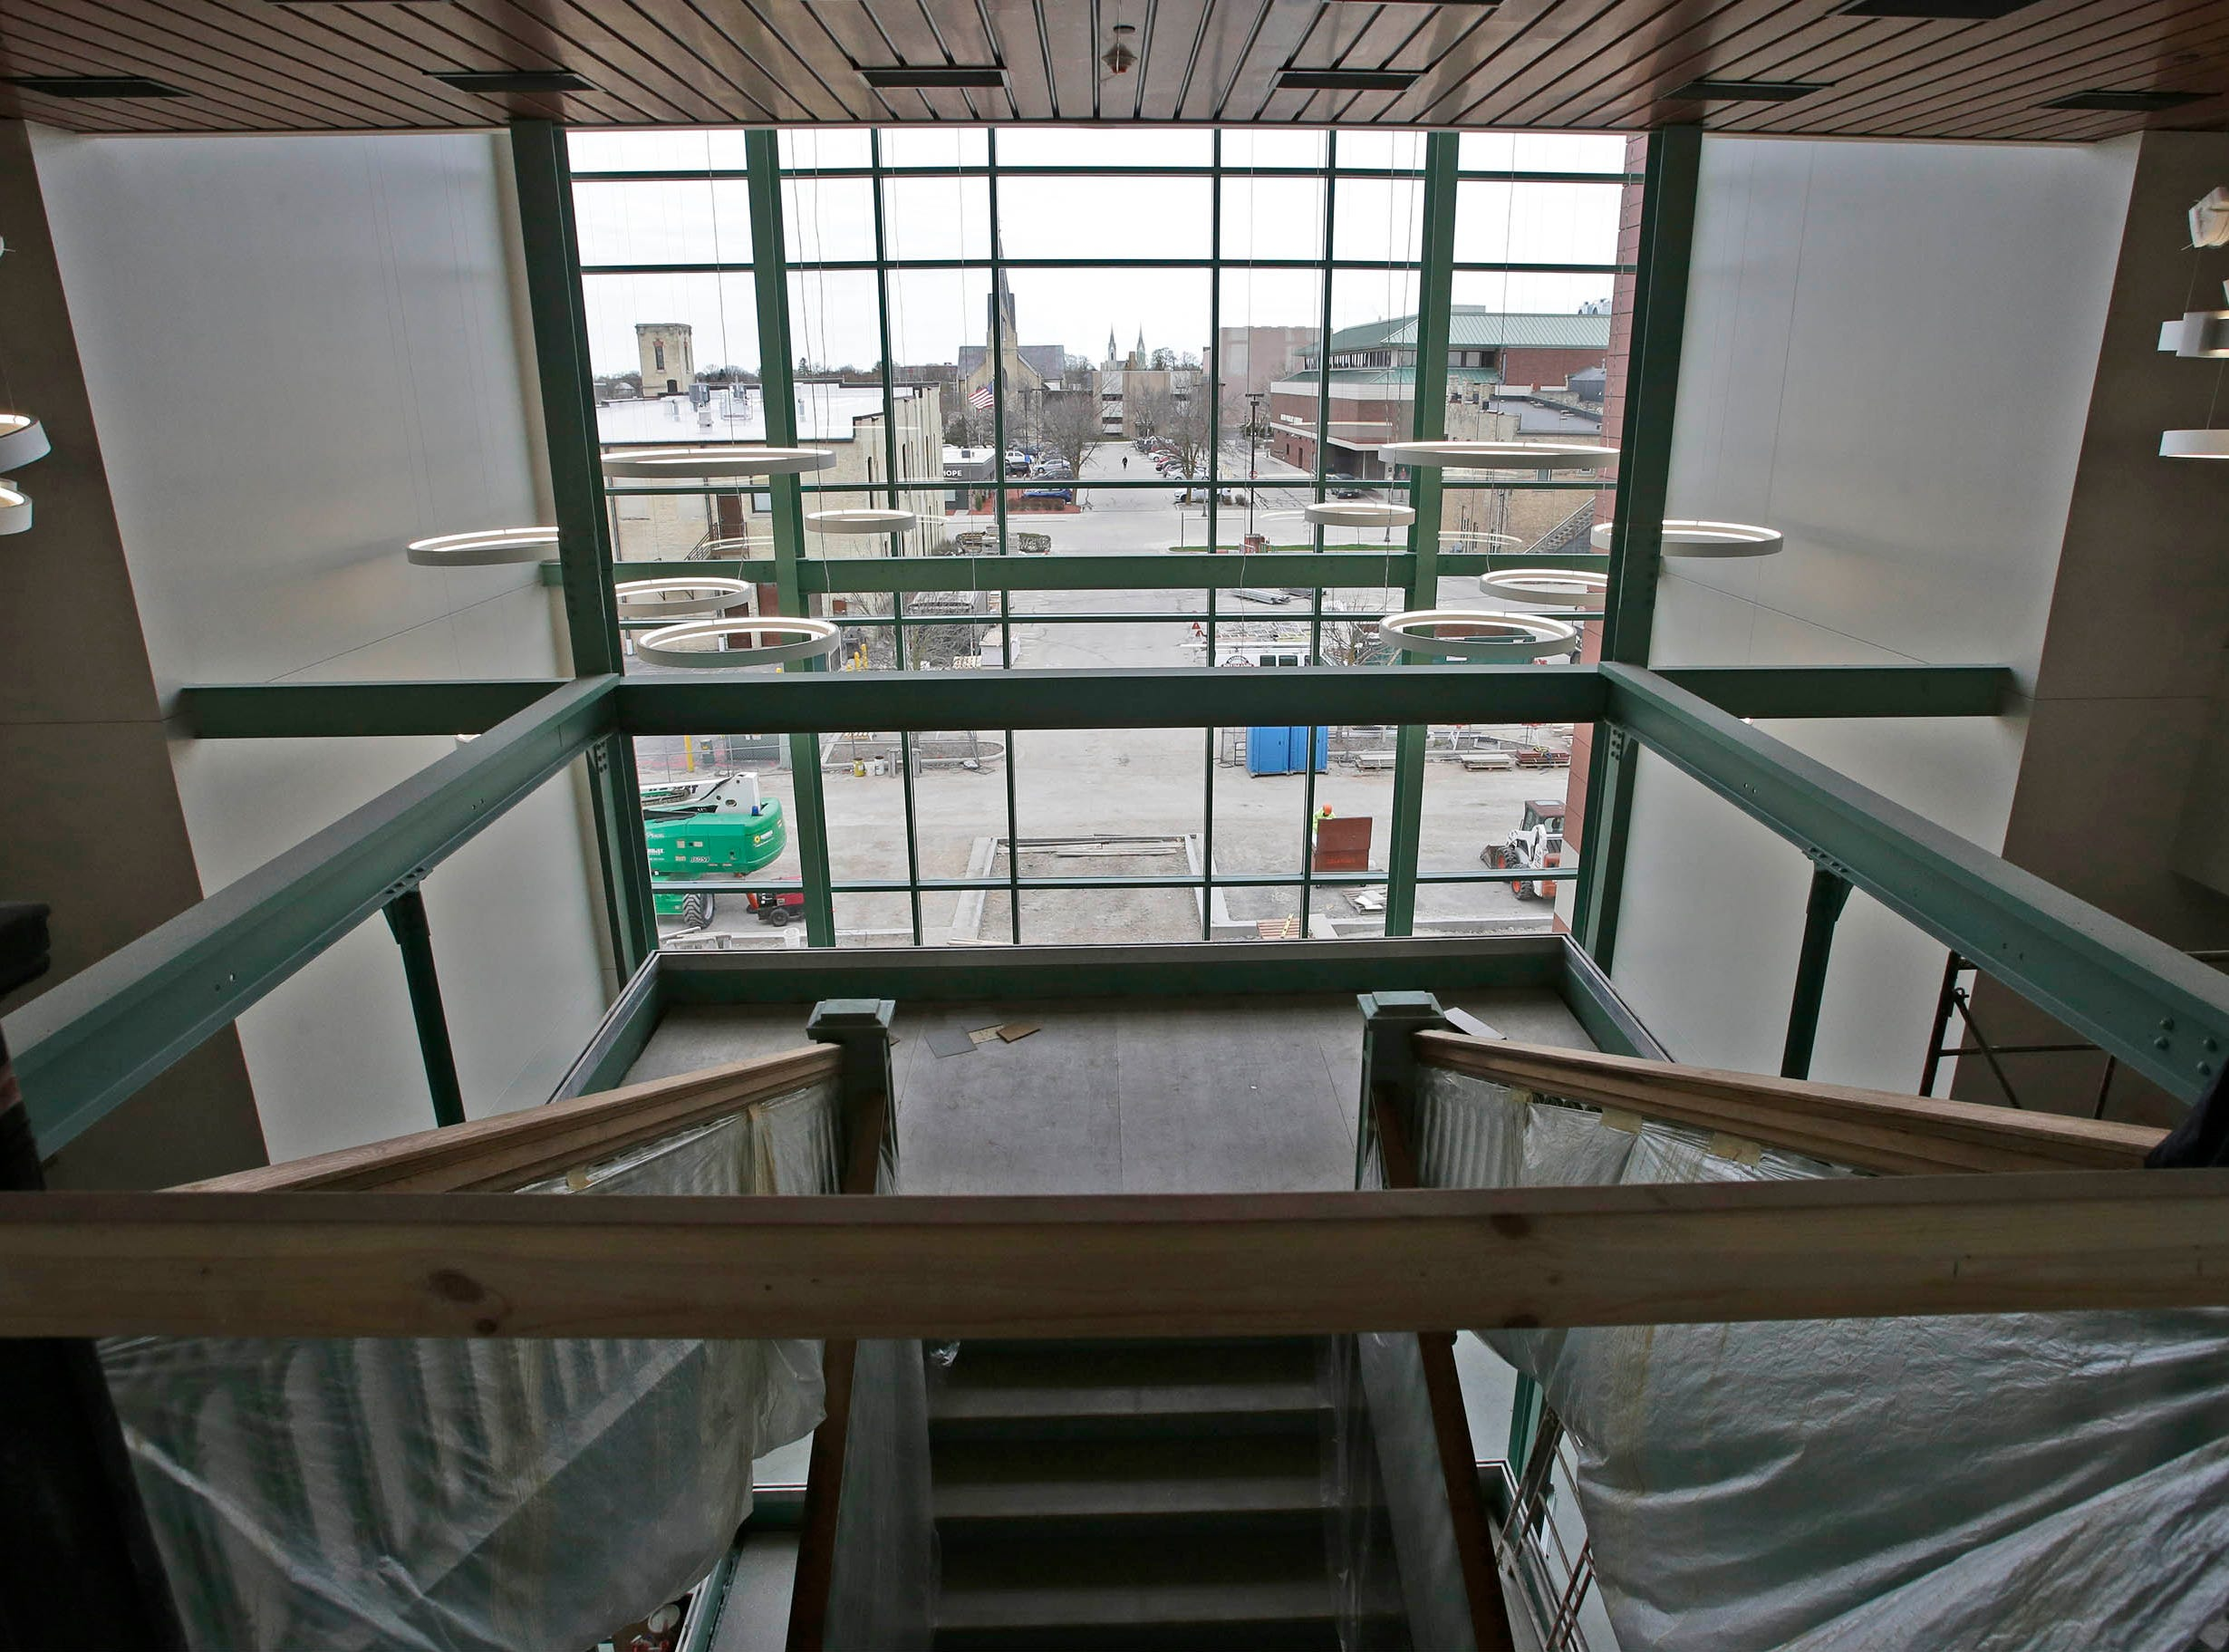 A view of the new entrance area at Sheboygan City Hall as seen, Tuesday, May 7, 2019, in Sheboygan, Wis. The $10.5 million dollar project completely rebuilt the inside of the building which still retains many touches of its original character.